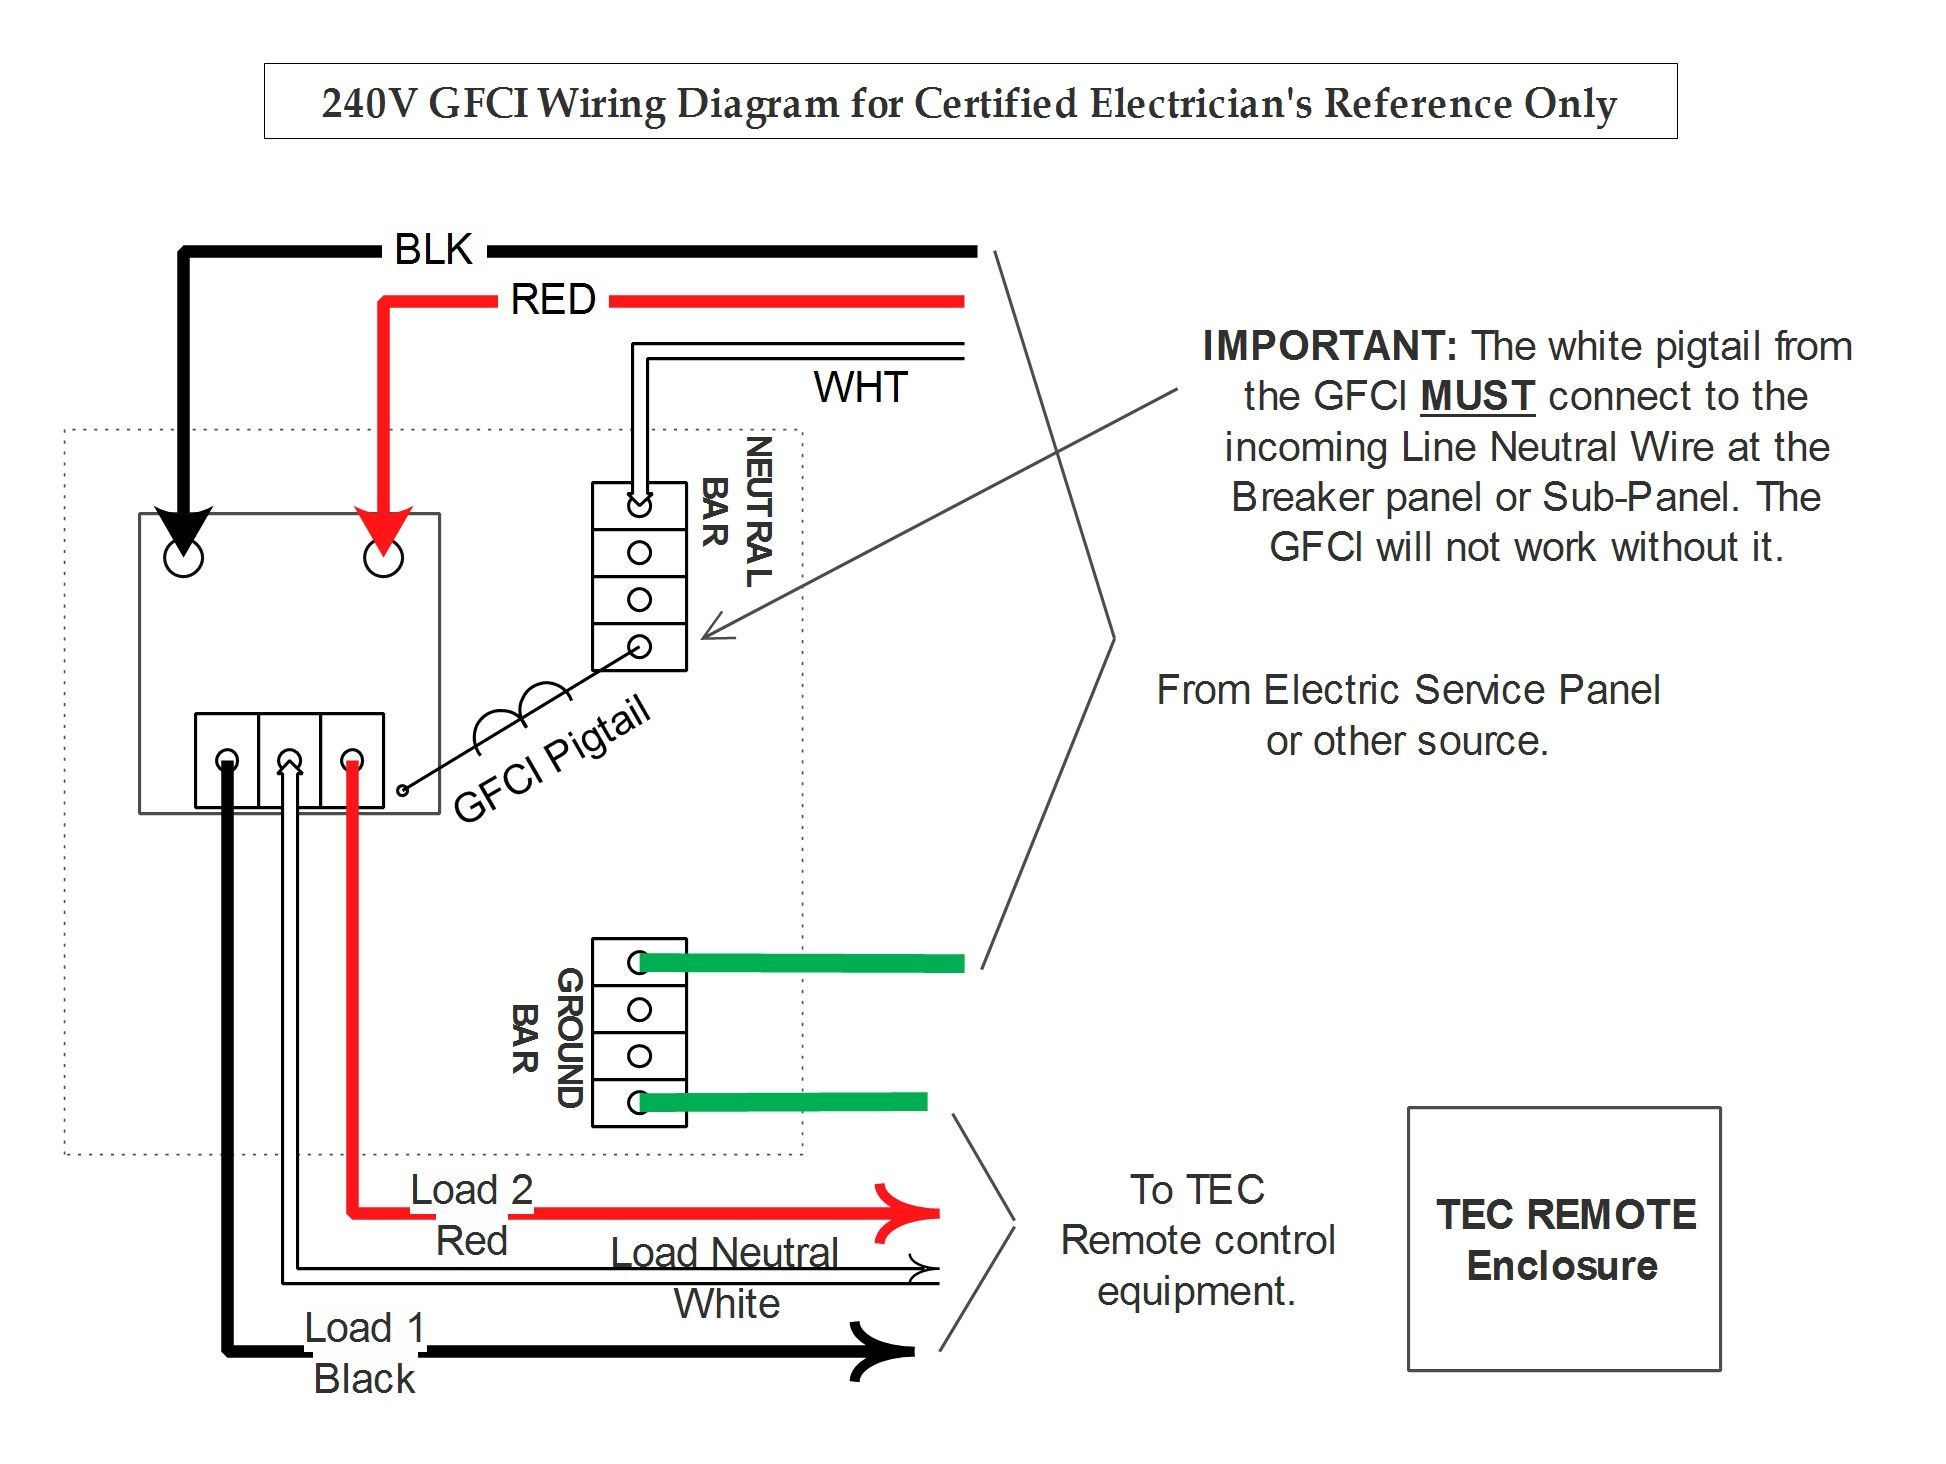 hight resolution of ranco wiring diagram 240v wiring diagram insideranco 8145 wiring diagram wiring diagram ranco wiring diagram 240v